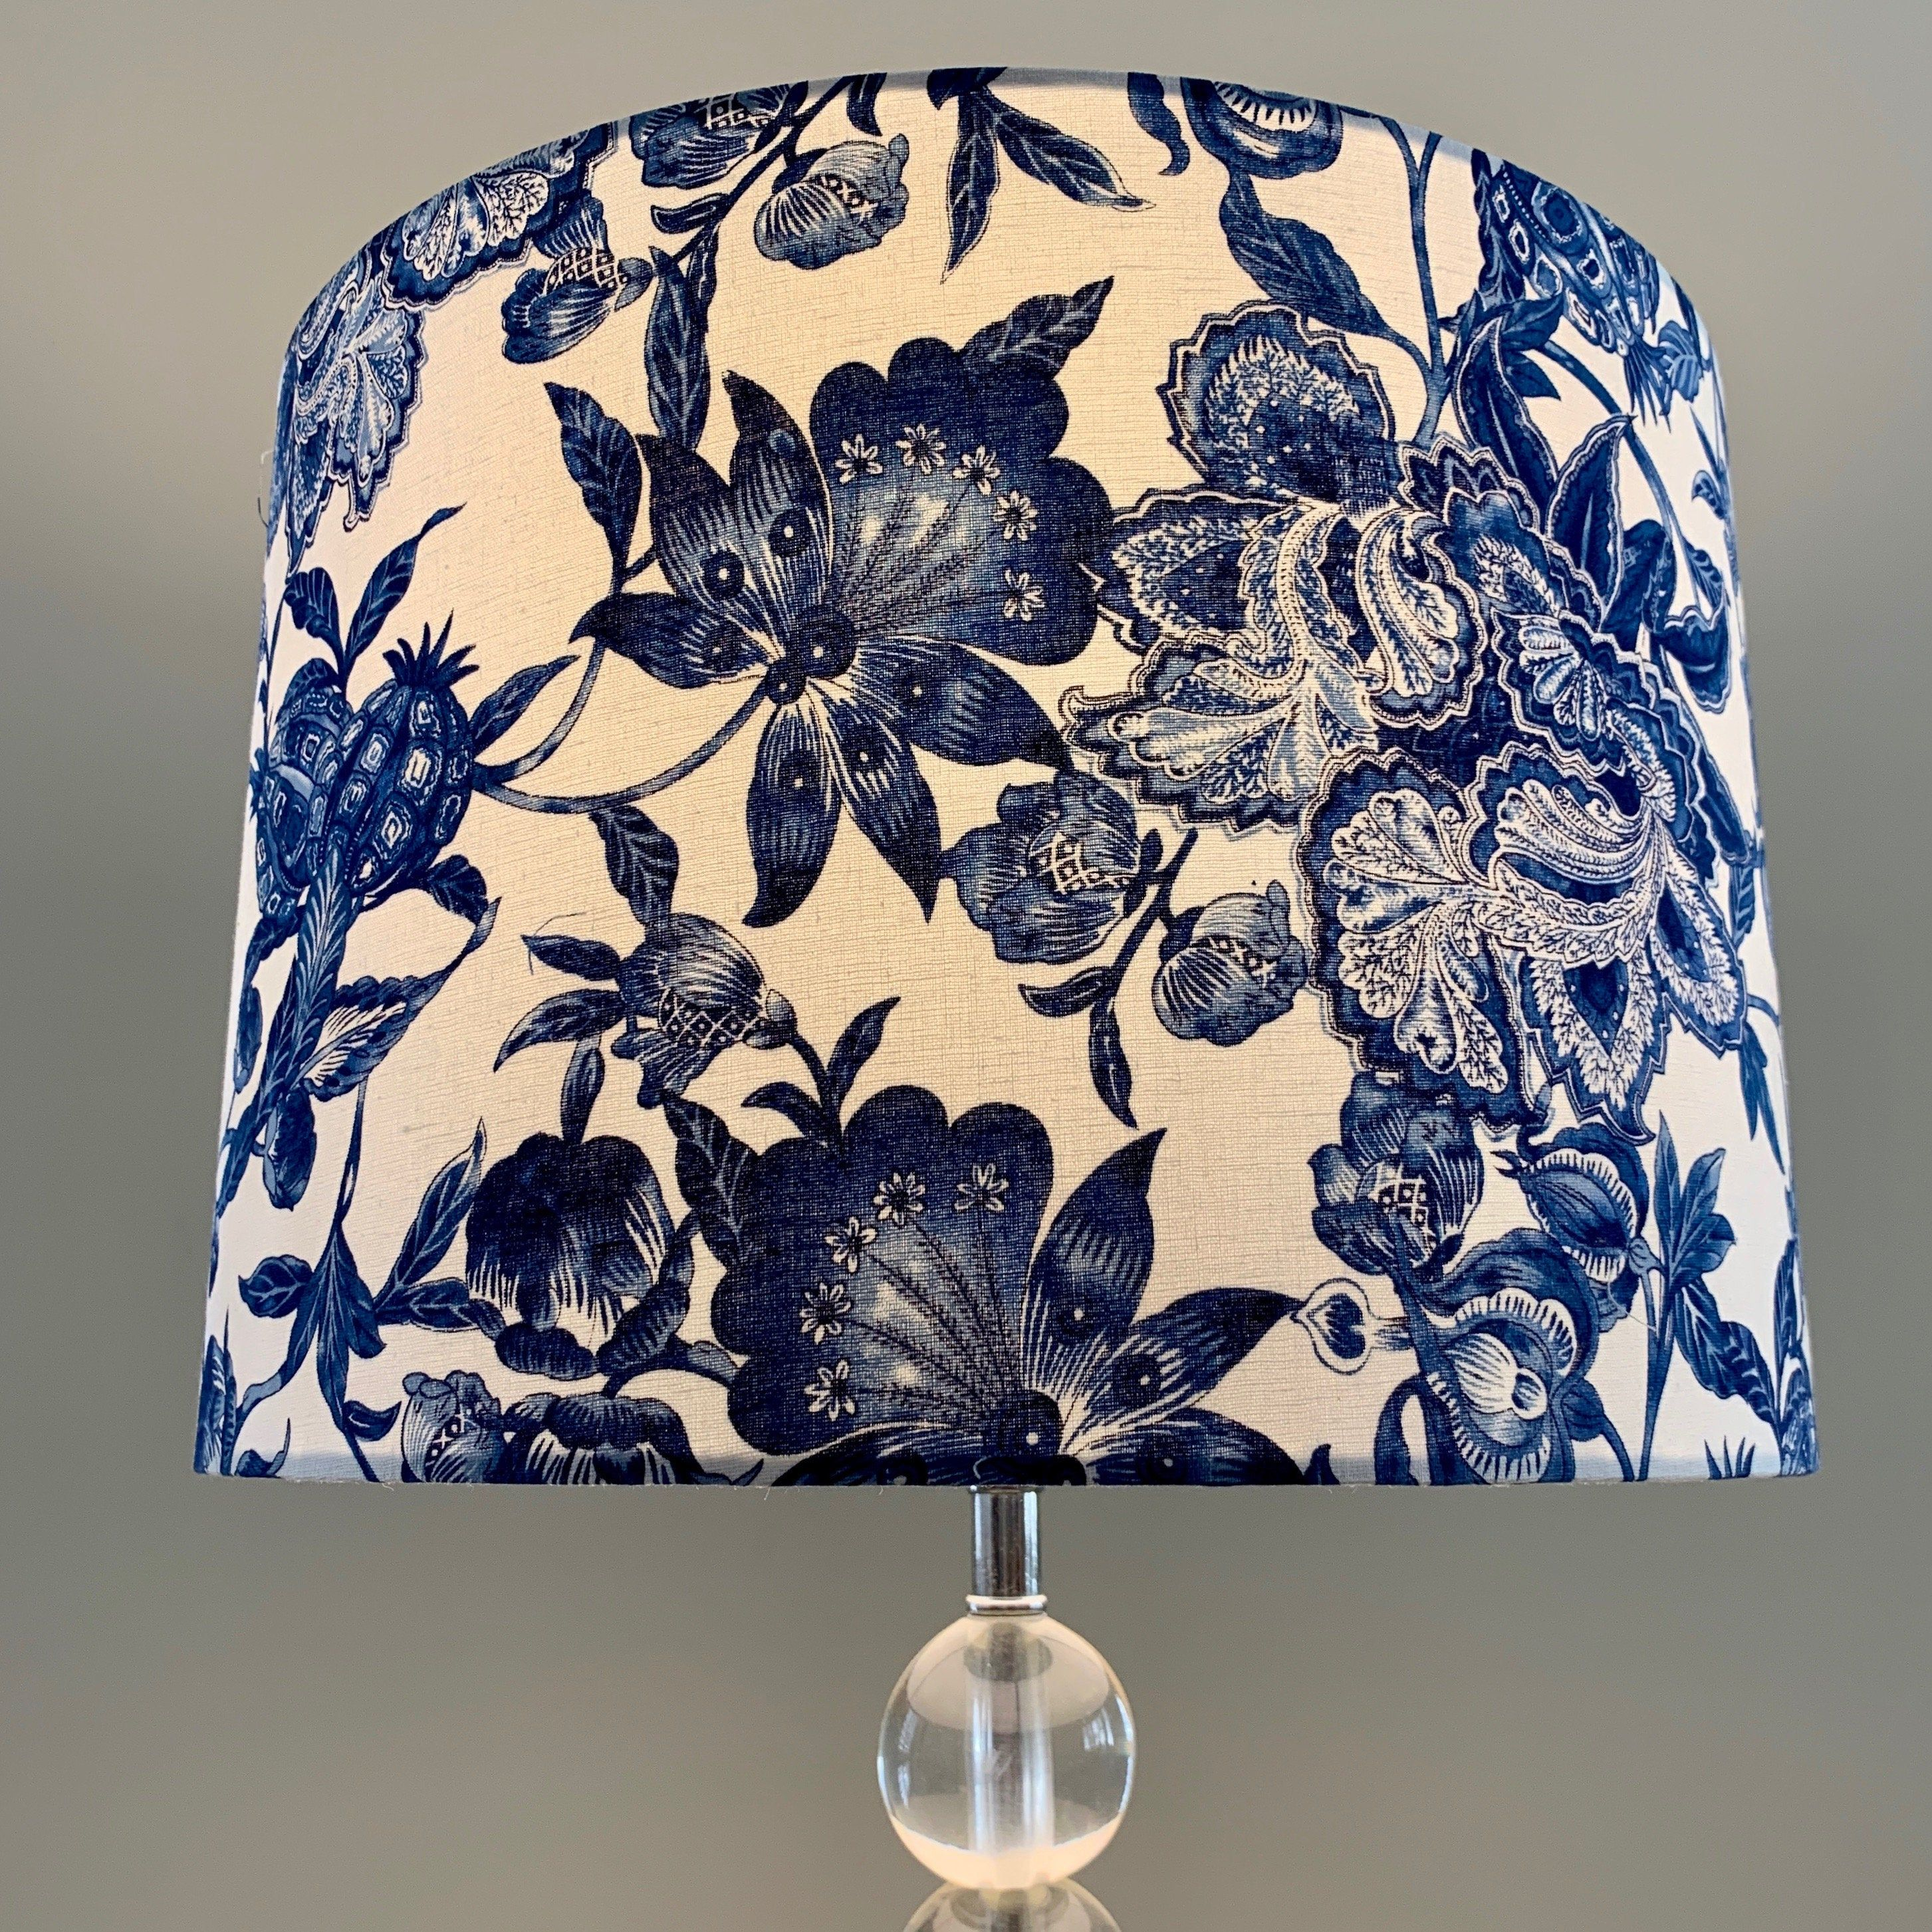 Blue And White Floral Lamp Shade Hamptons Style Boho Lamp Shade Indigo Navy In 2020 Boho Lamp Lamp Shade